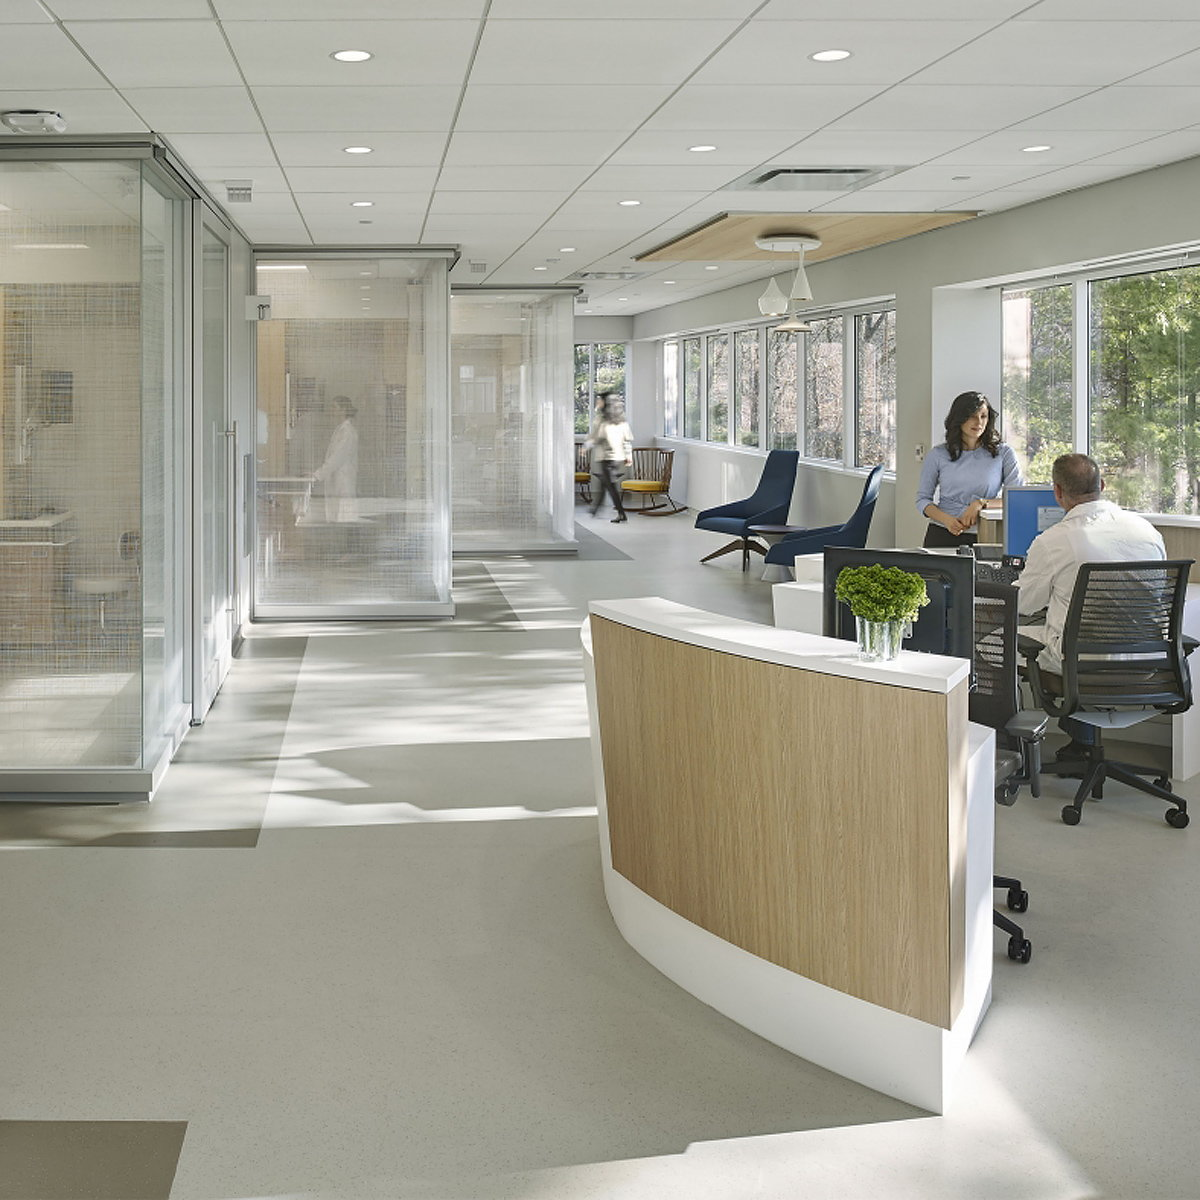 IIDA Announces Winners of 2017 Healthcare Interior Design Competition